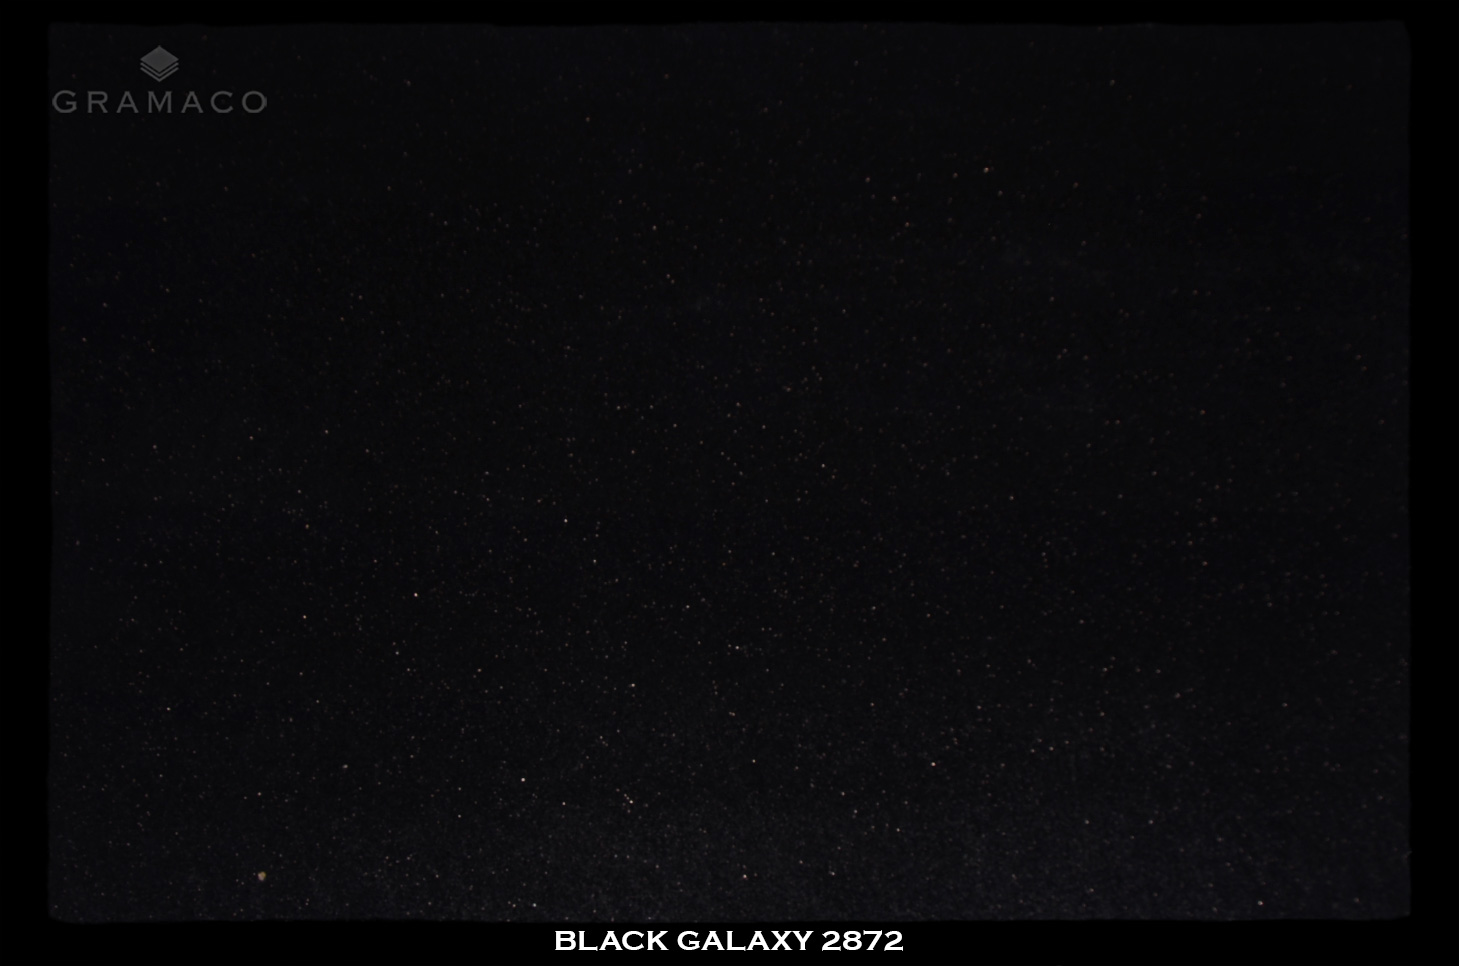 Black-Galaxy-2872-slab